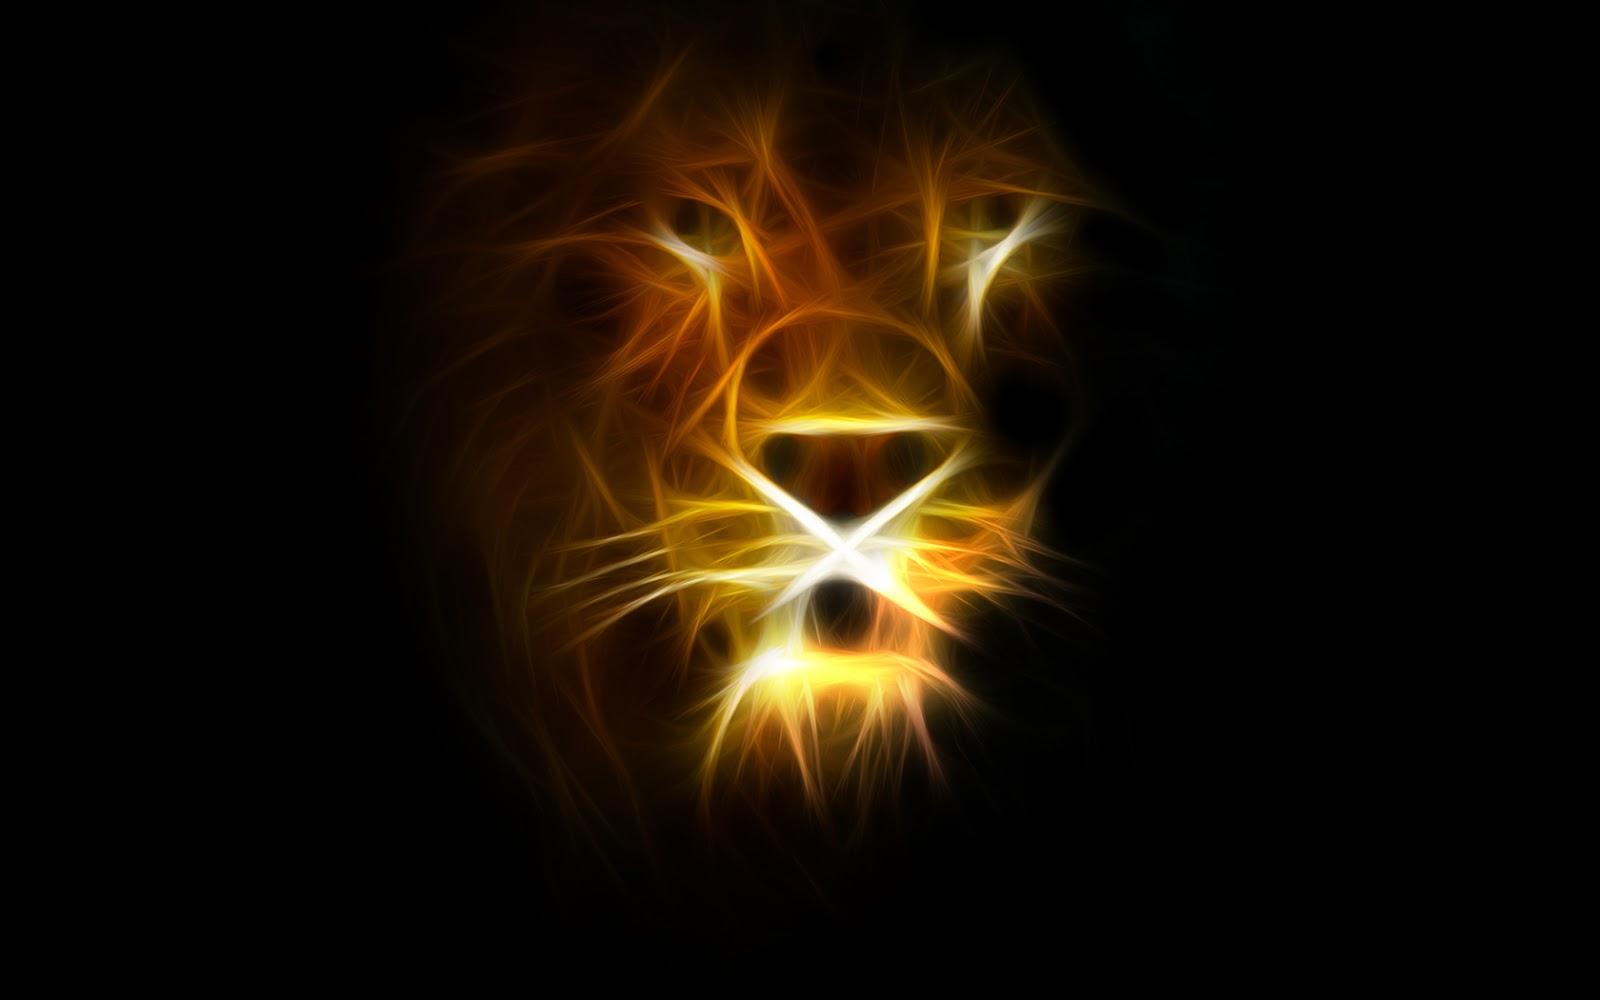 Animated Lion Wallpaper - Wallpapers Kid